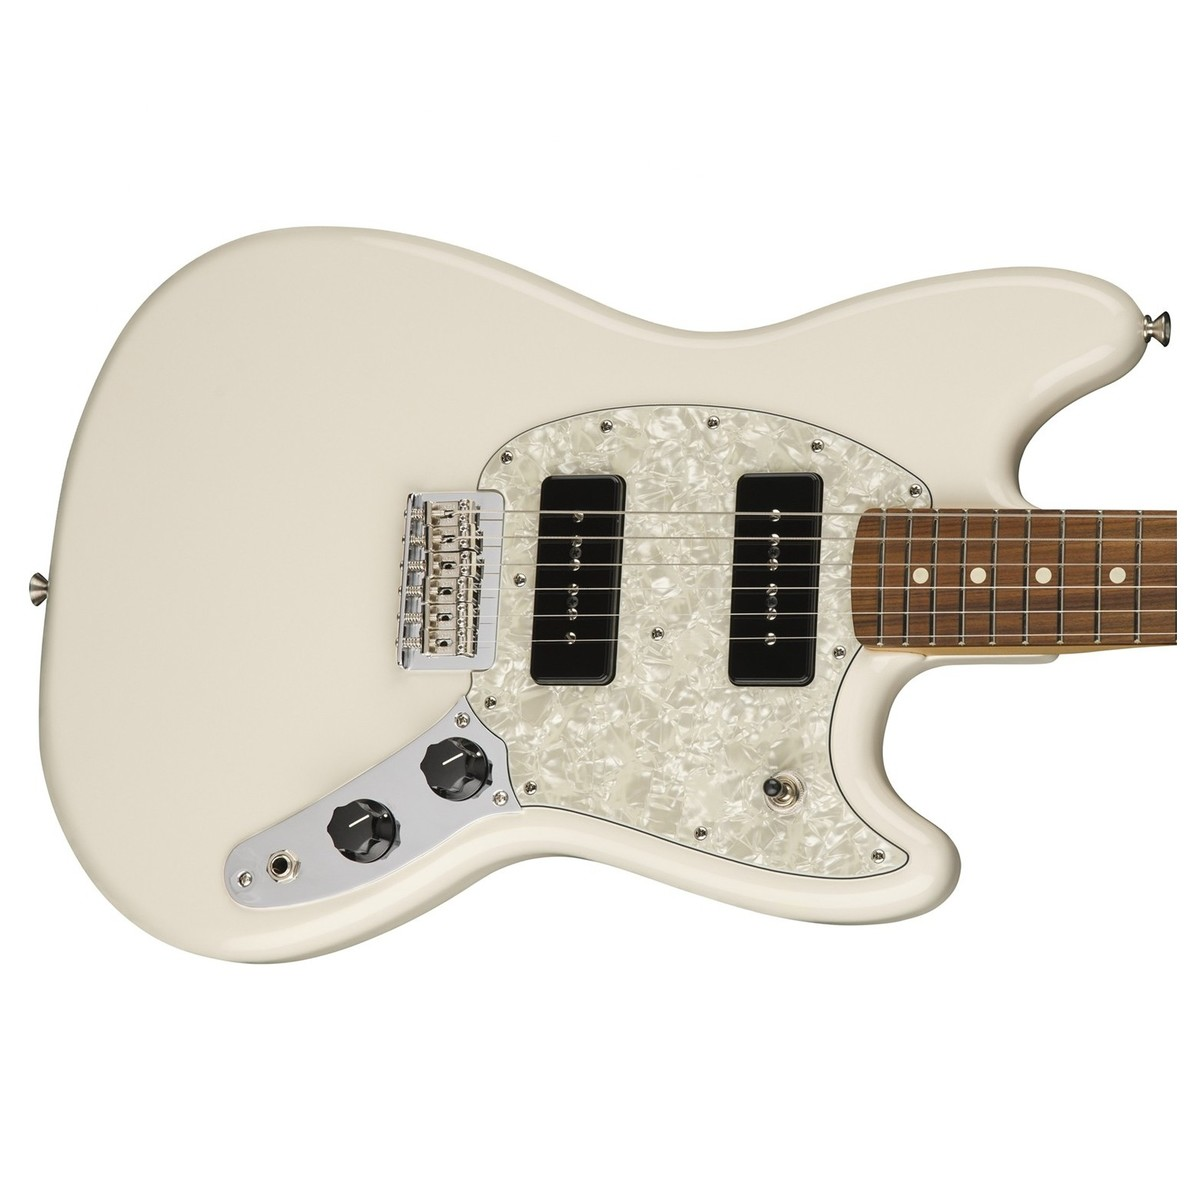 fender mustang 90 electric guitar pau ferro olympic white at gear4music. Black Bedroom Furniture Sets. Home Design Ideas